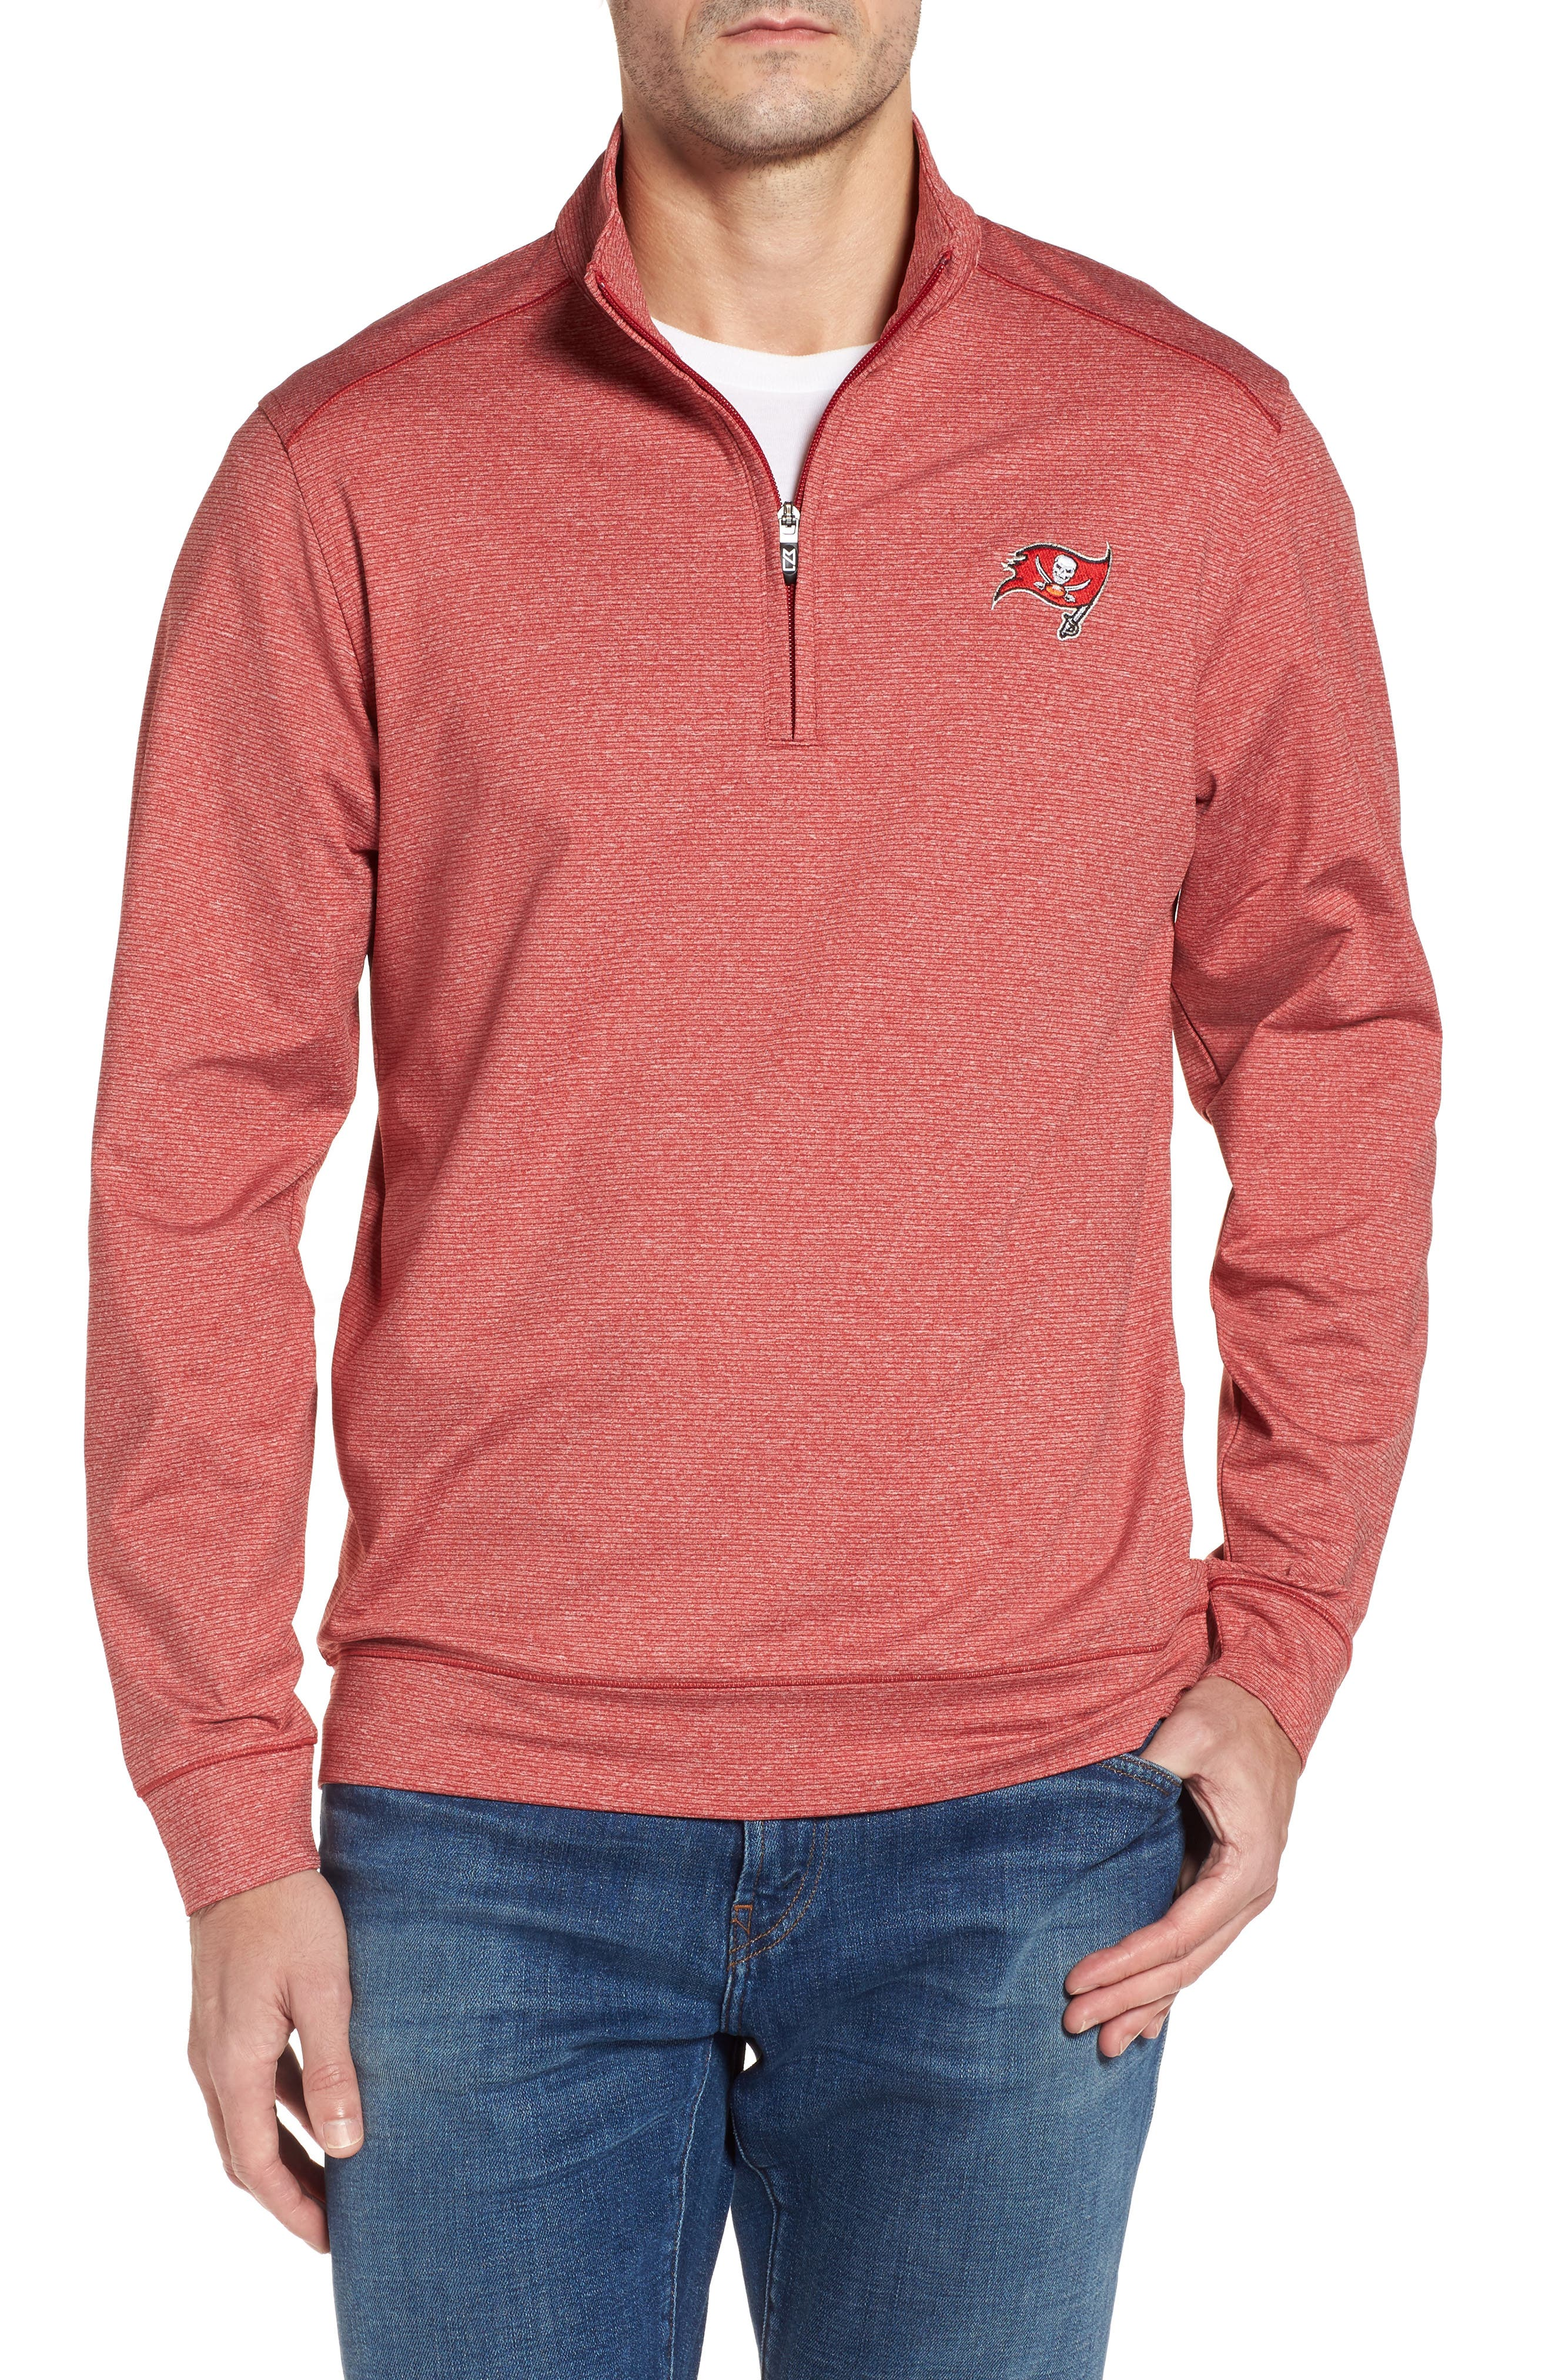 Shoreline - Tampa Bay Buccaneers Half Zip Pullover,                         Main,                         color,